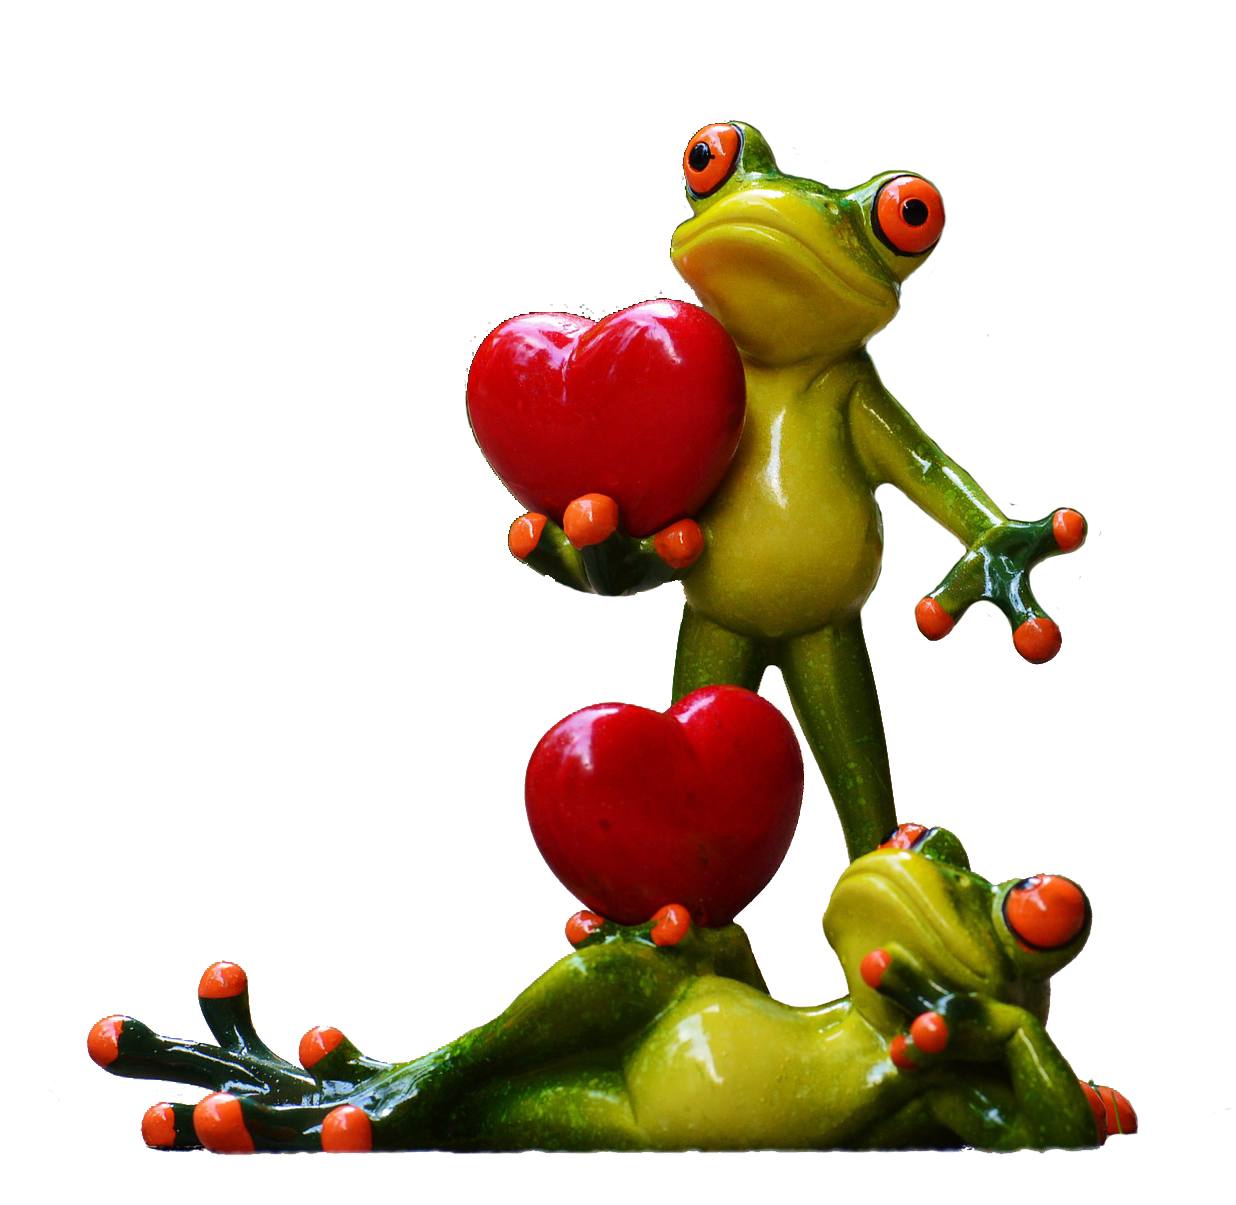 frogs-903176_1920